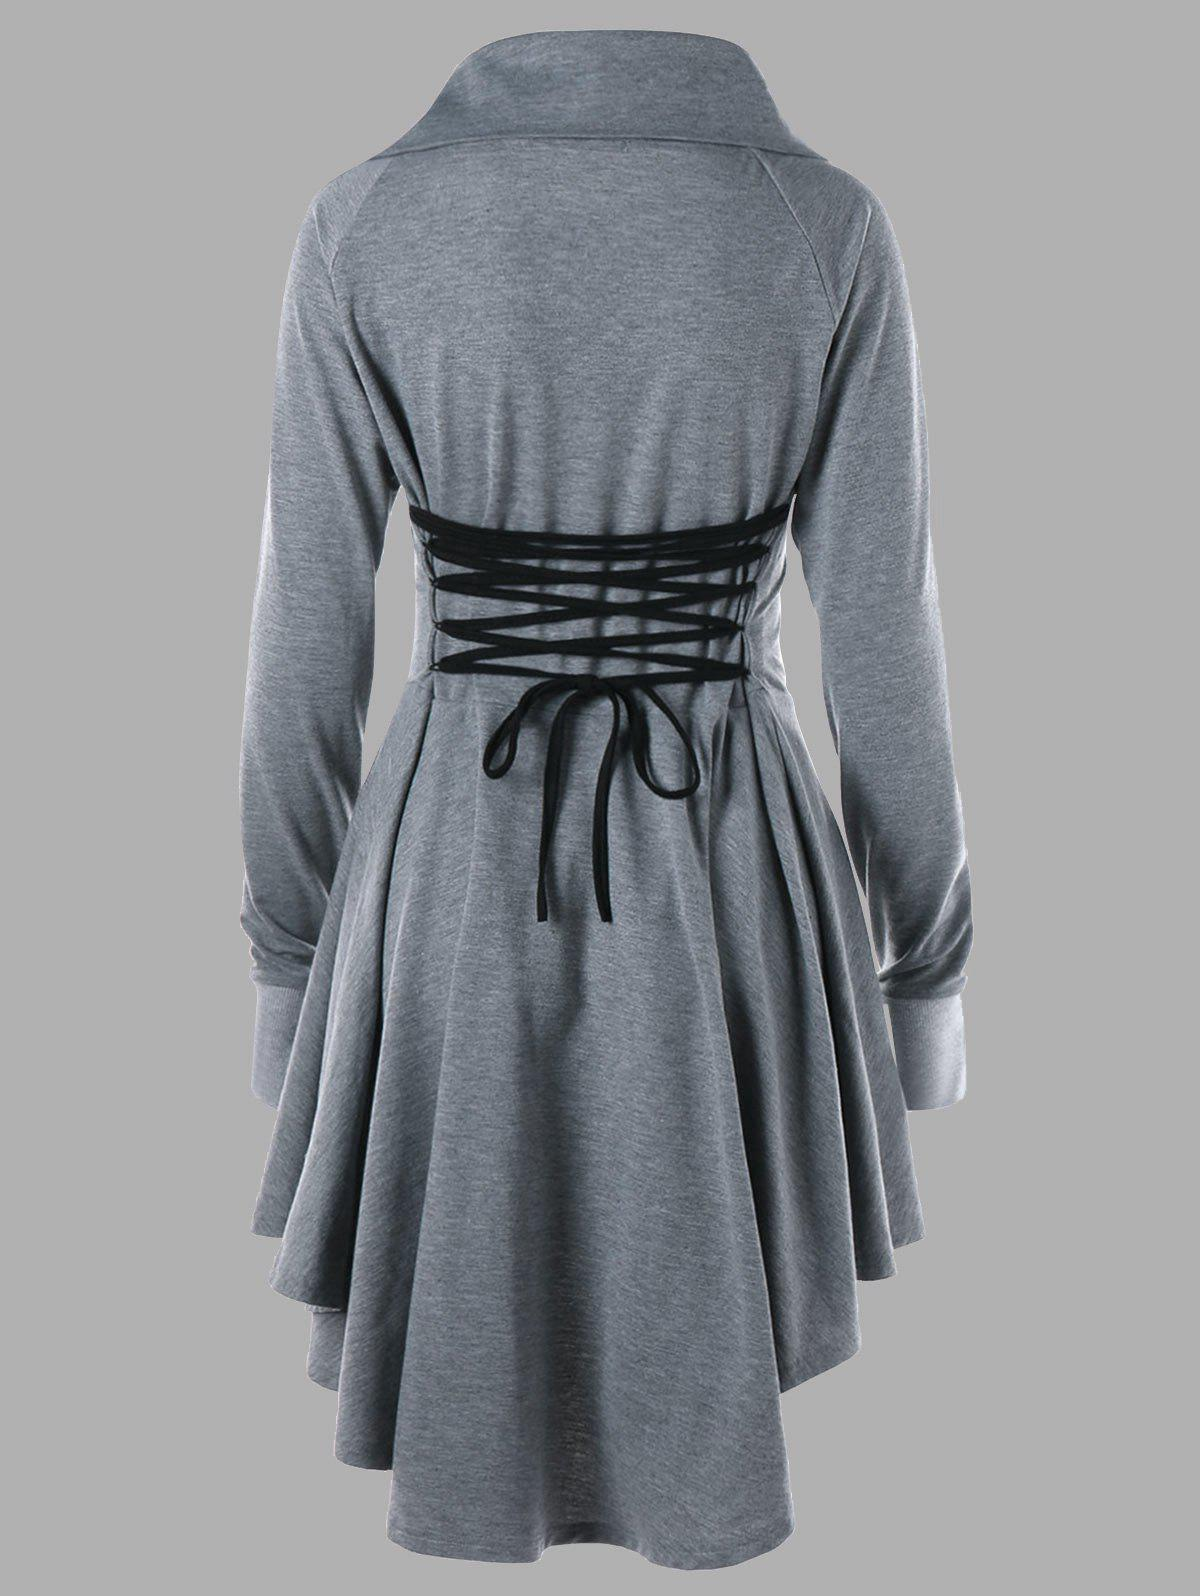 Plus Size Long Sleeve Lace Up Skater Dress - GRAY 4XL